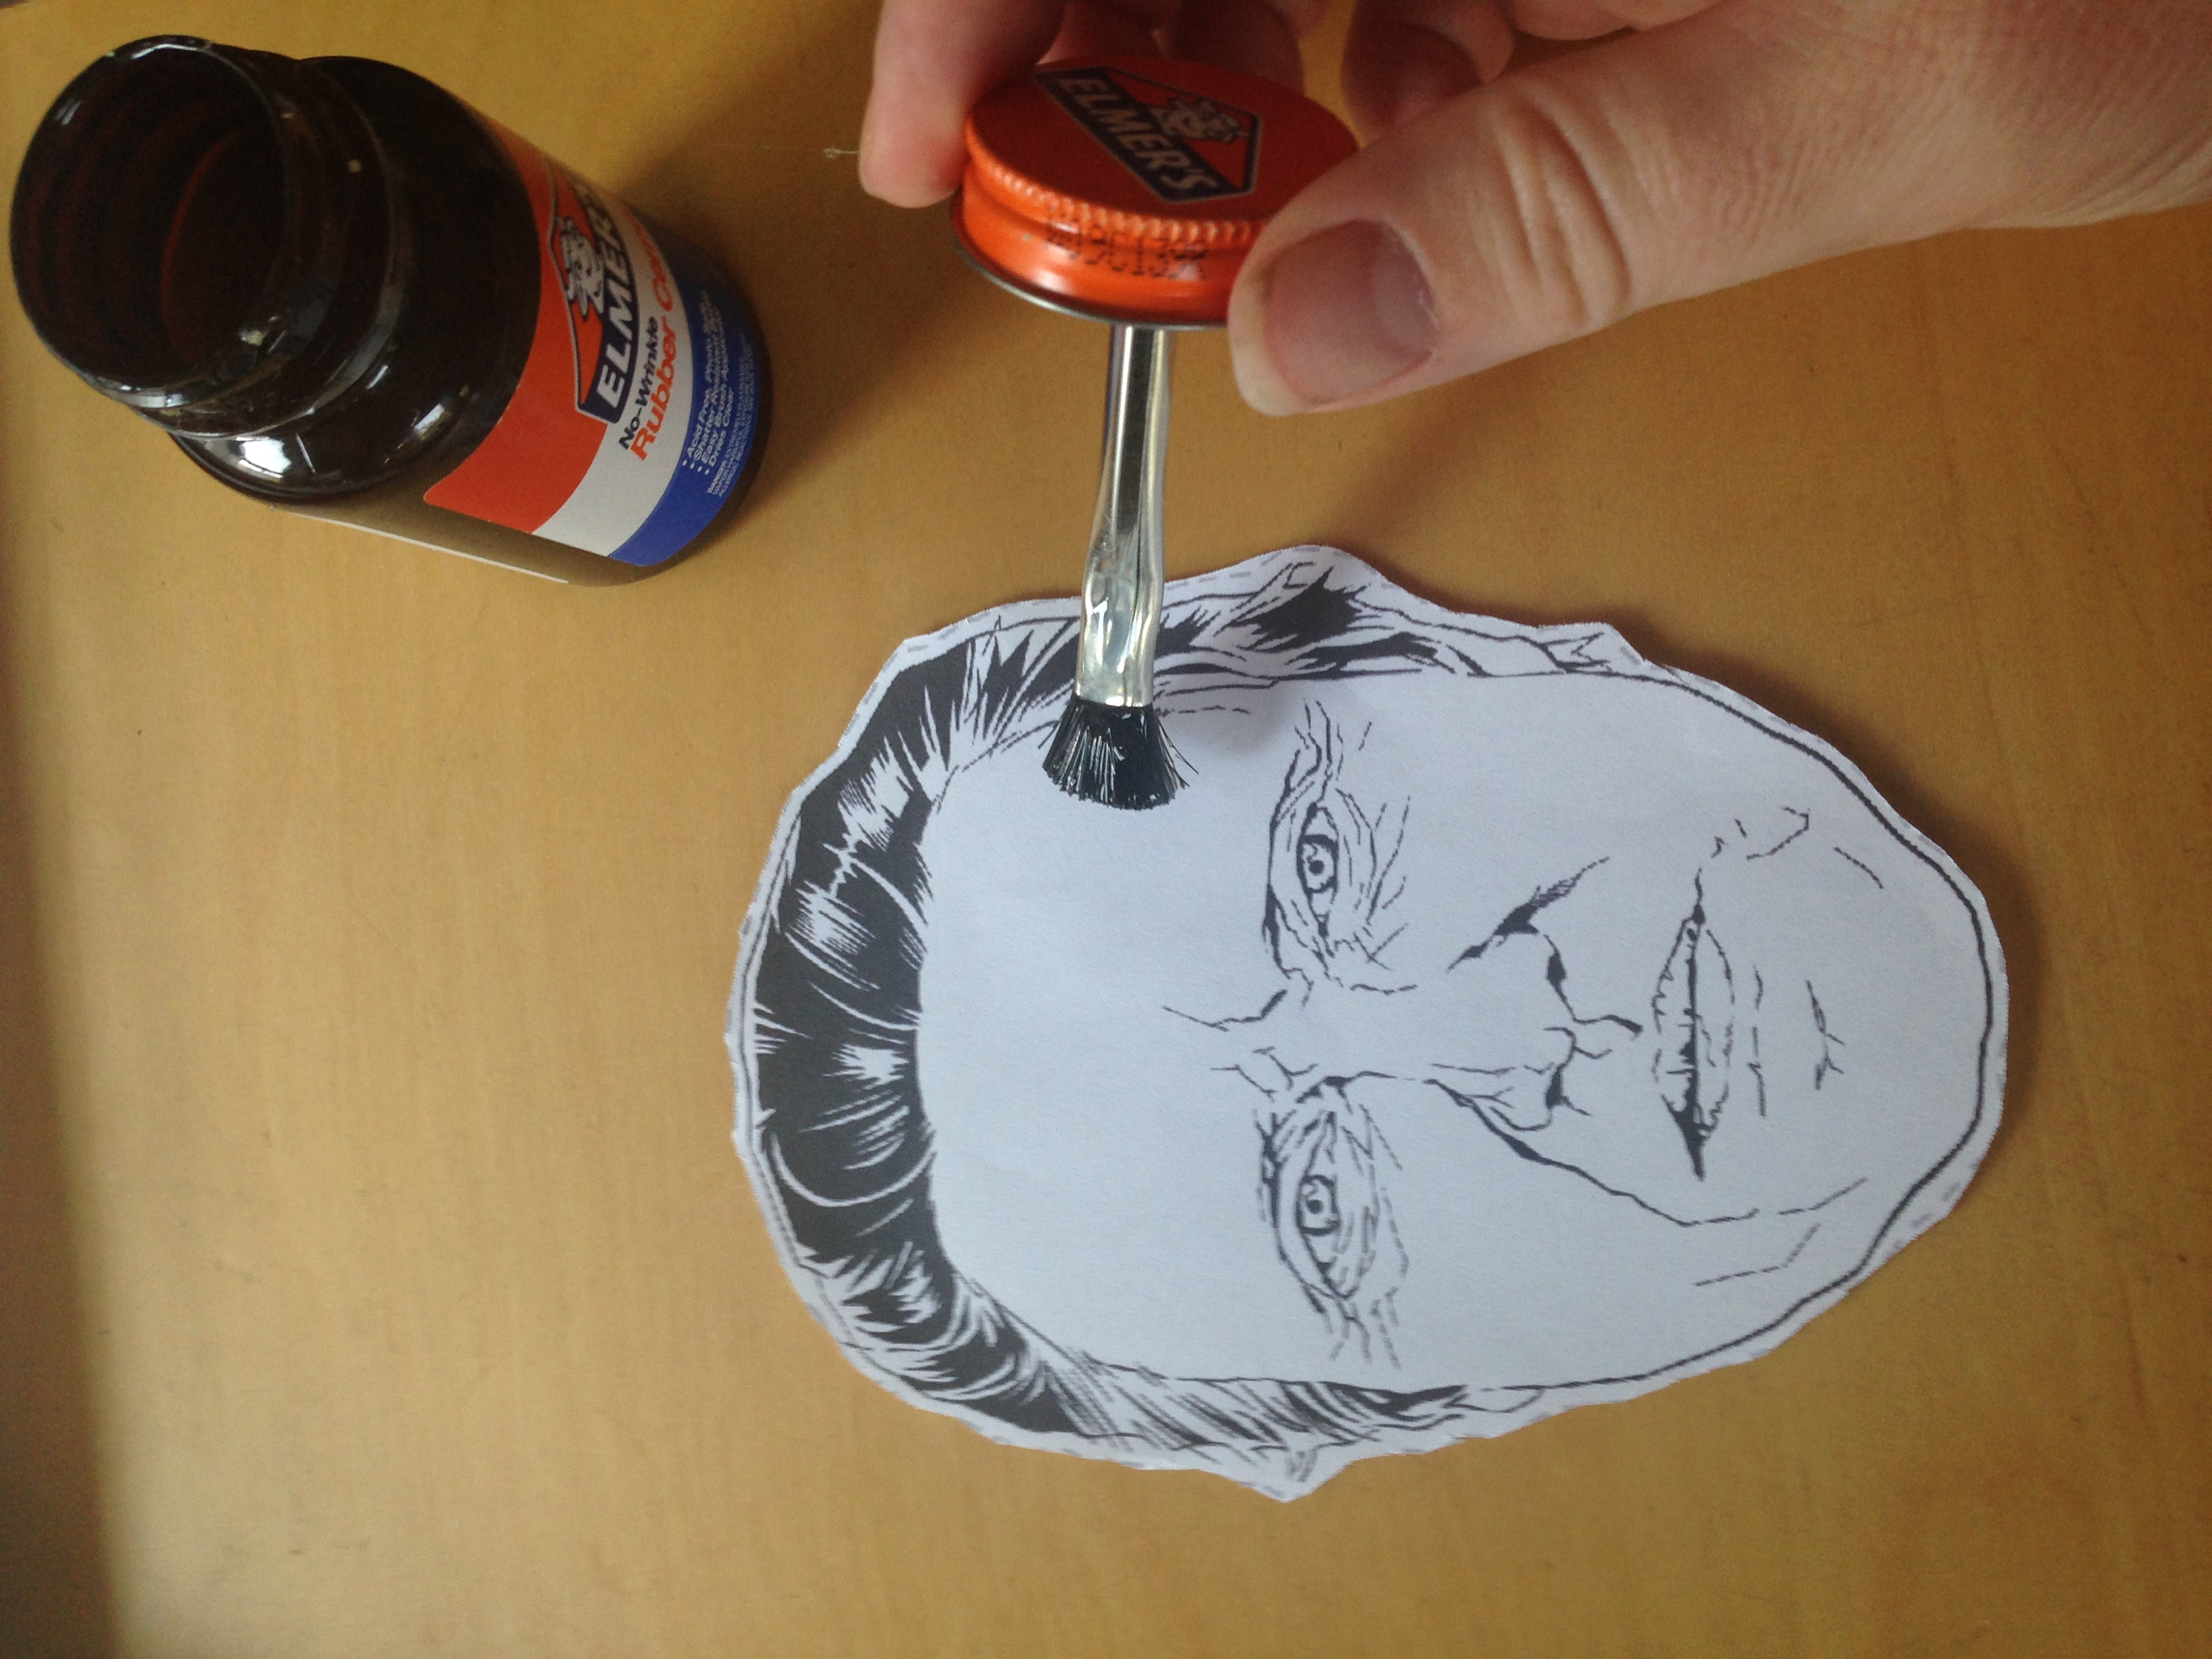 slide christopher walken mask into ziplock bag